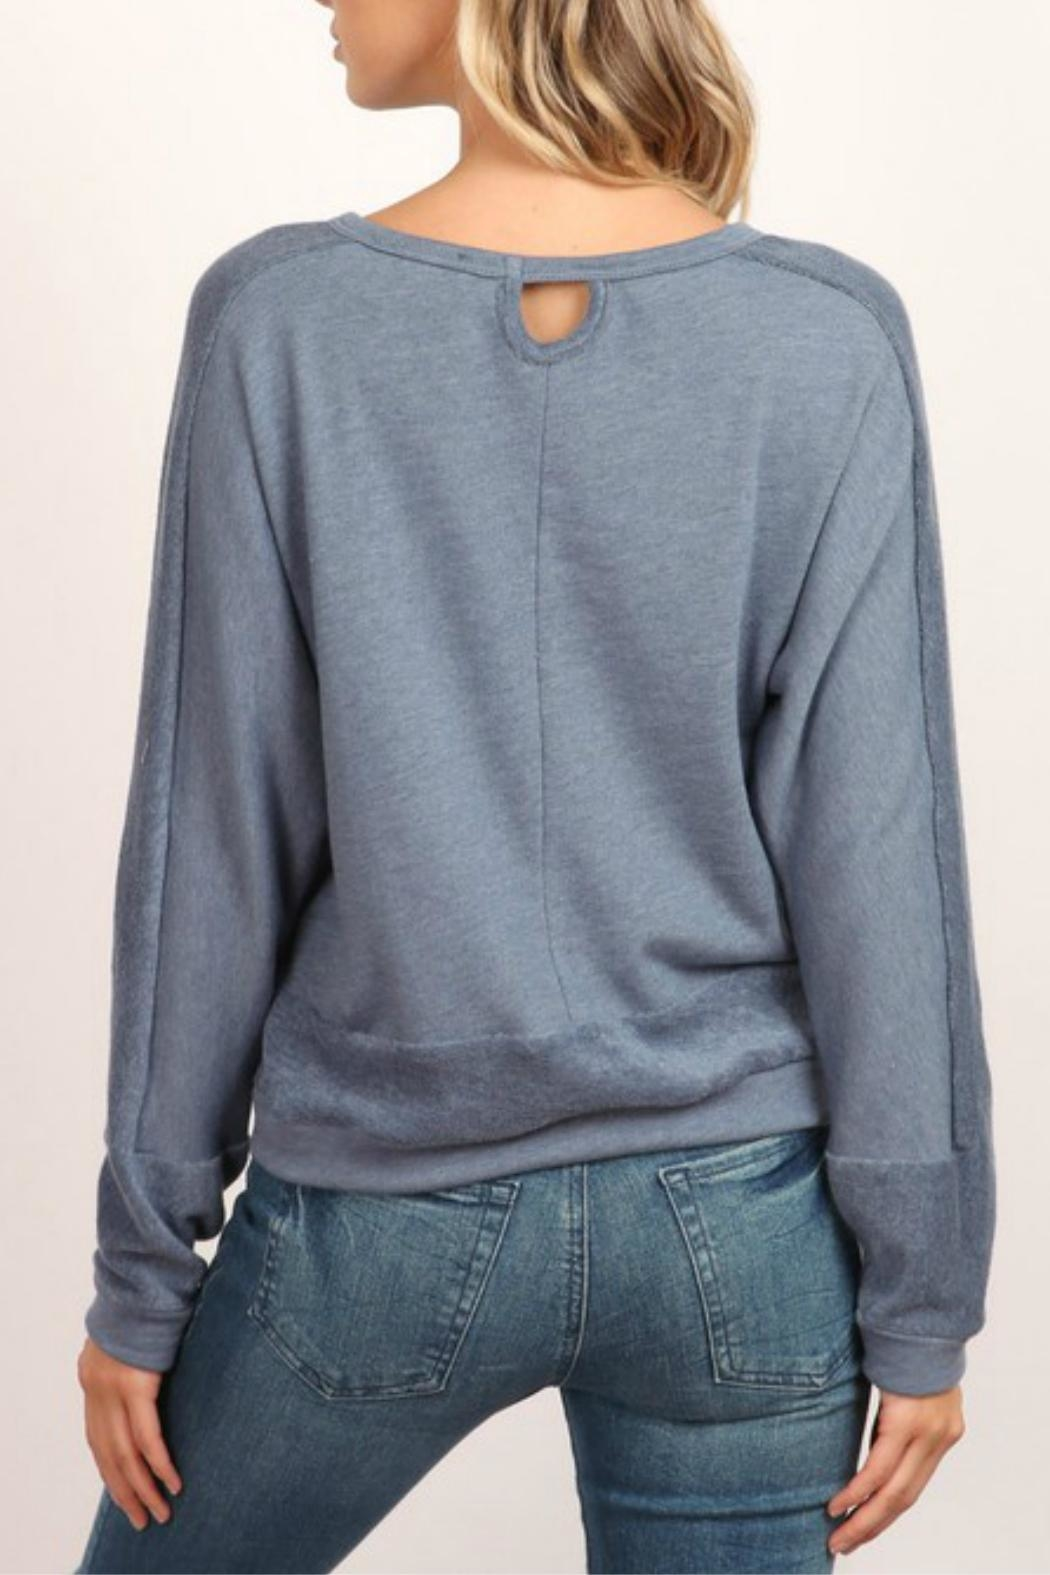 hummingbird Long-Sleeve Pullover Sweatshirt - Front Full Image